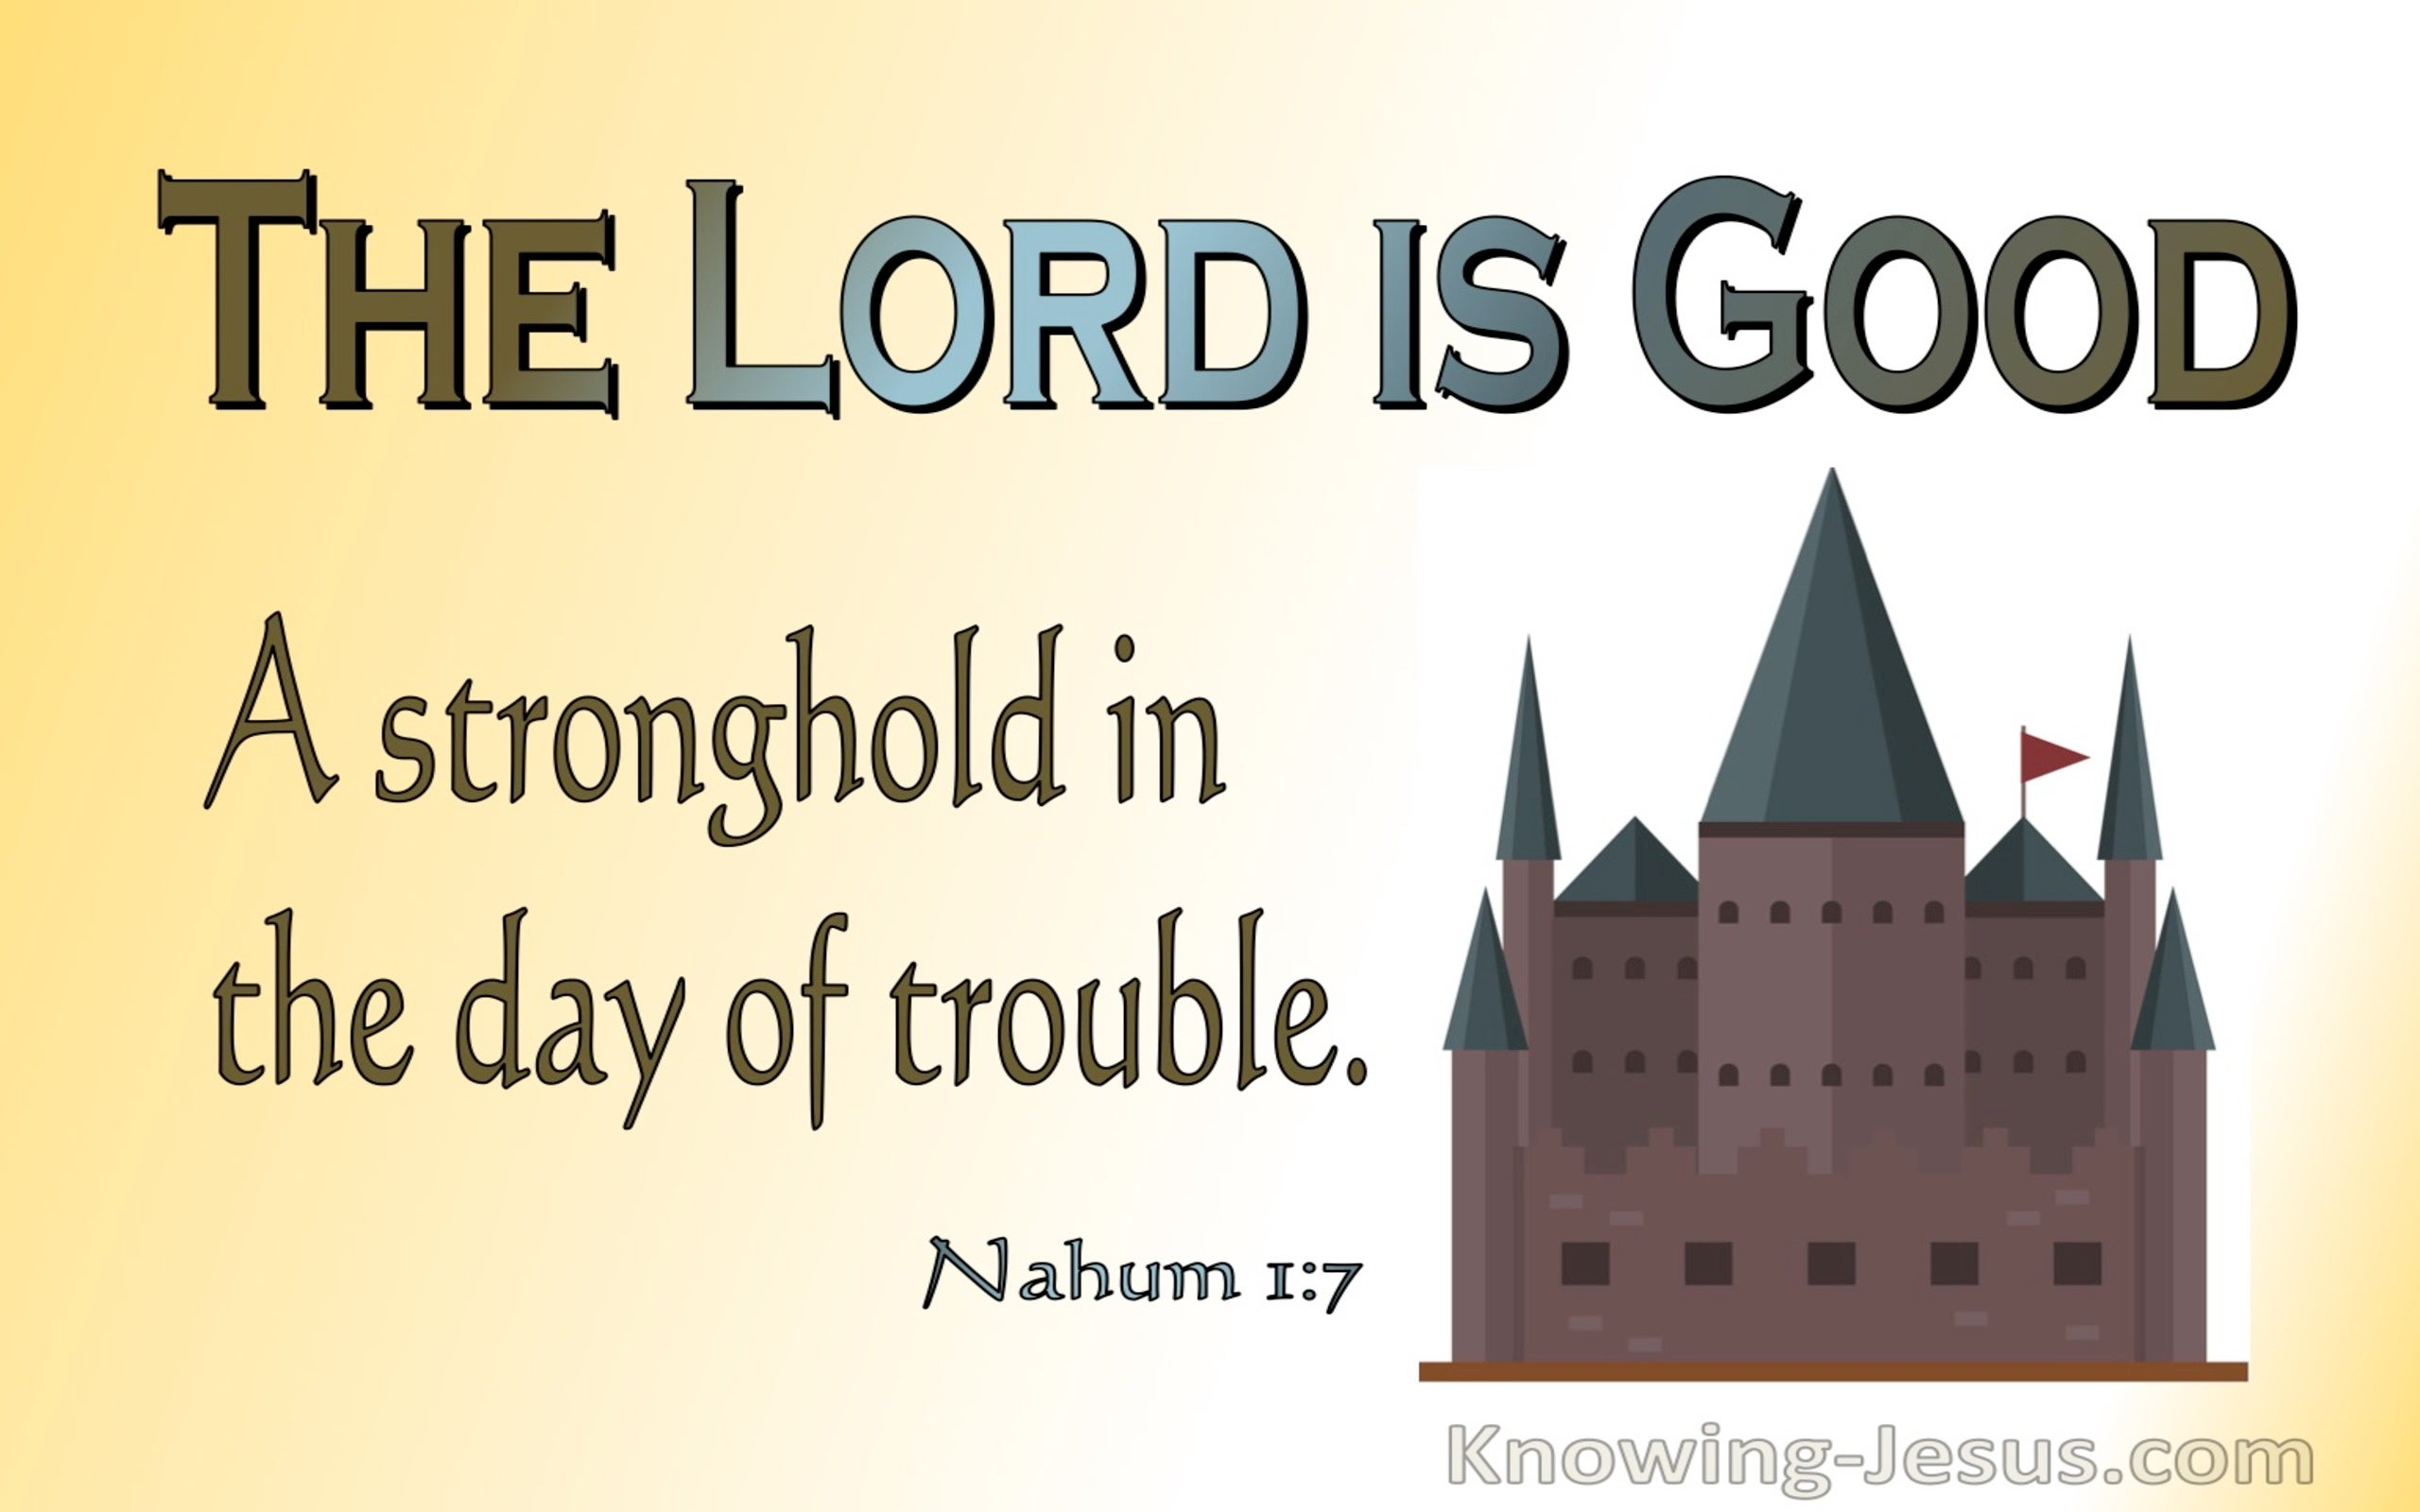 Nahum 1:7the Lord Is Good A Stronghold In The Day Of Trouble (yellow)